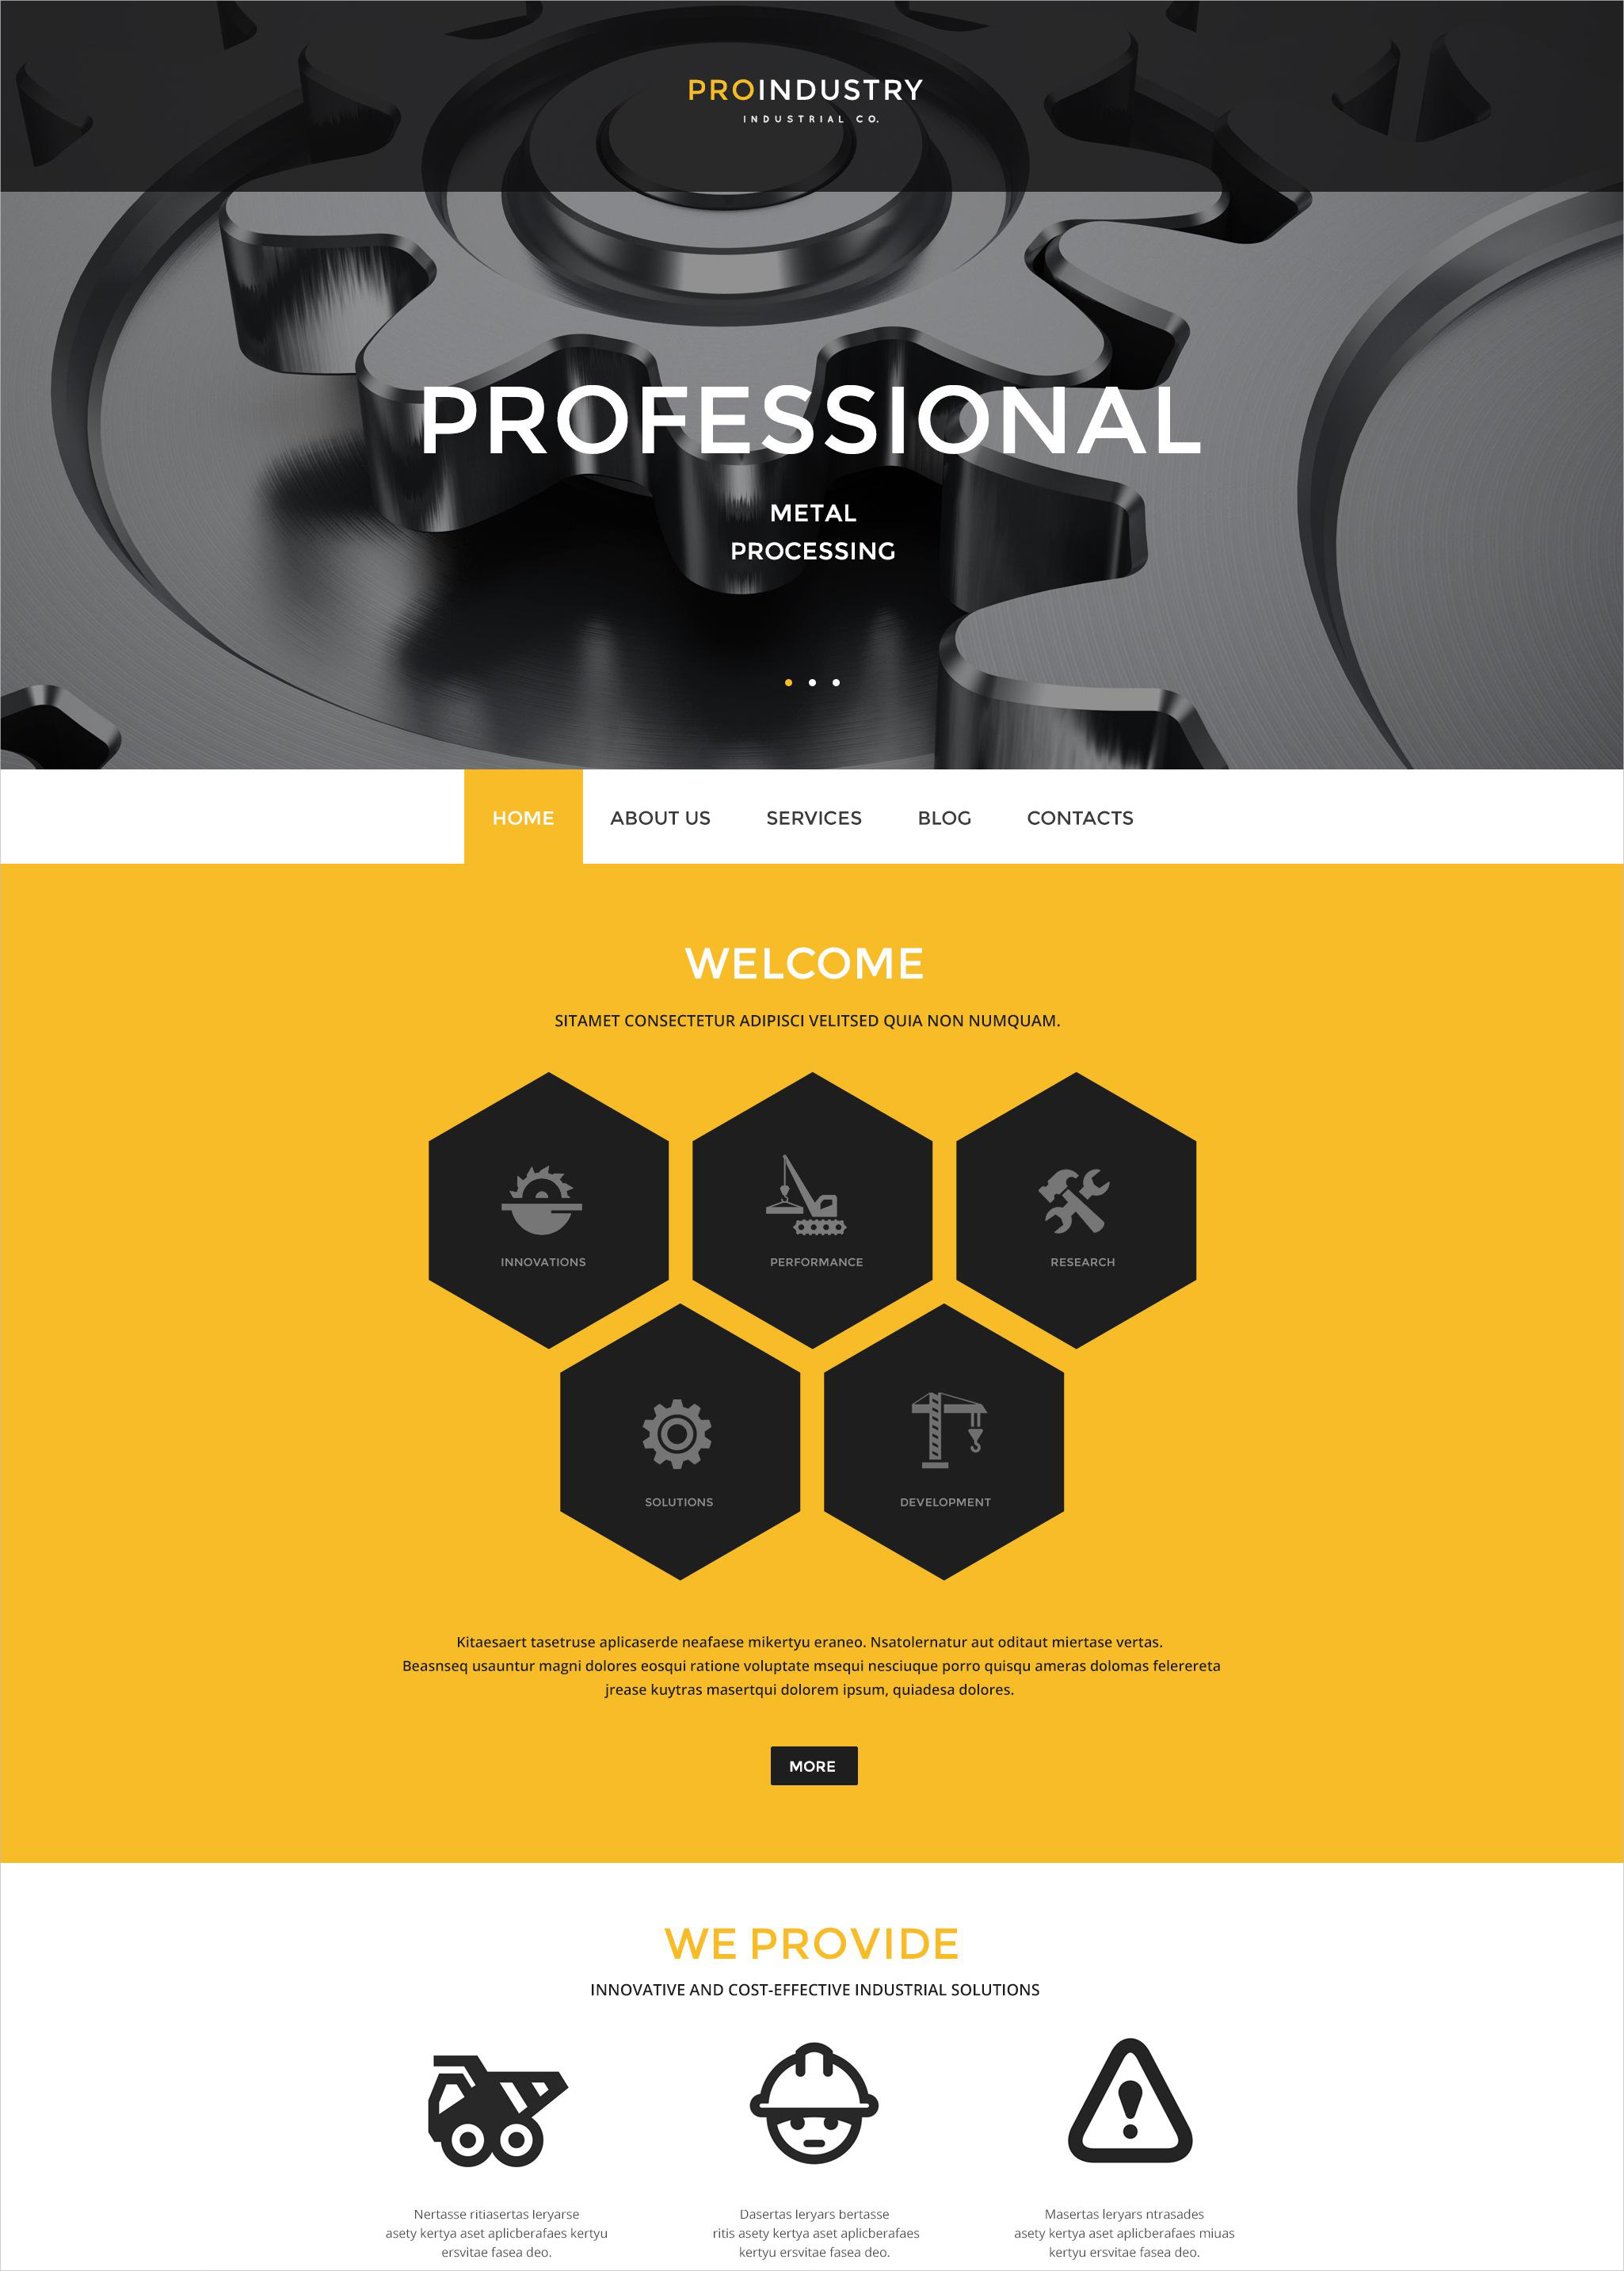 Business Industry WordPress Theme - $75